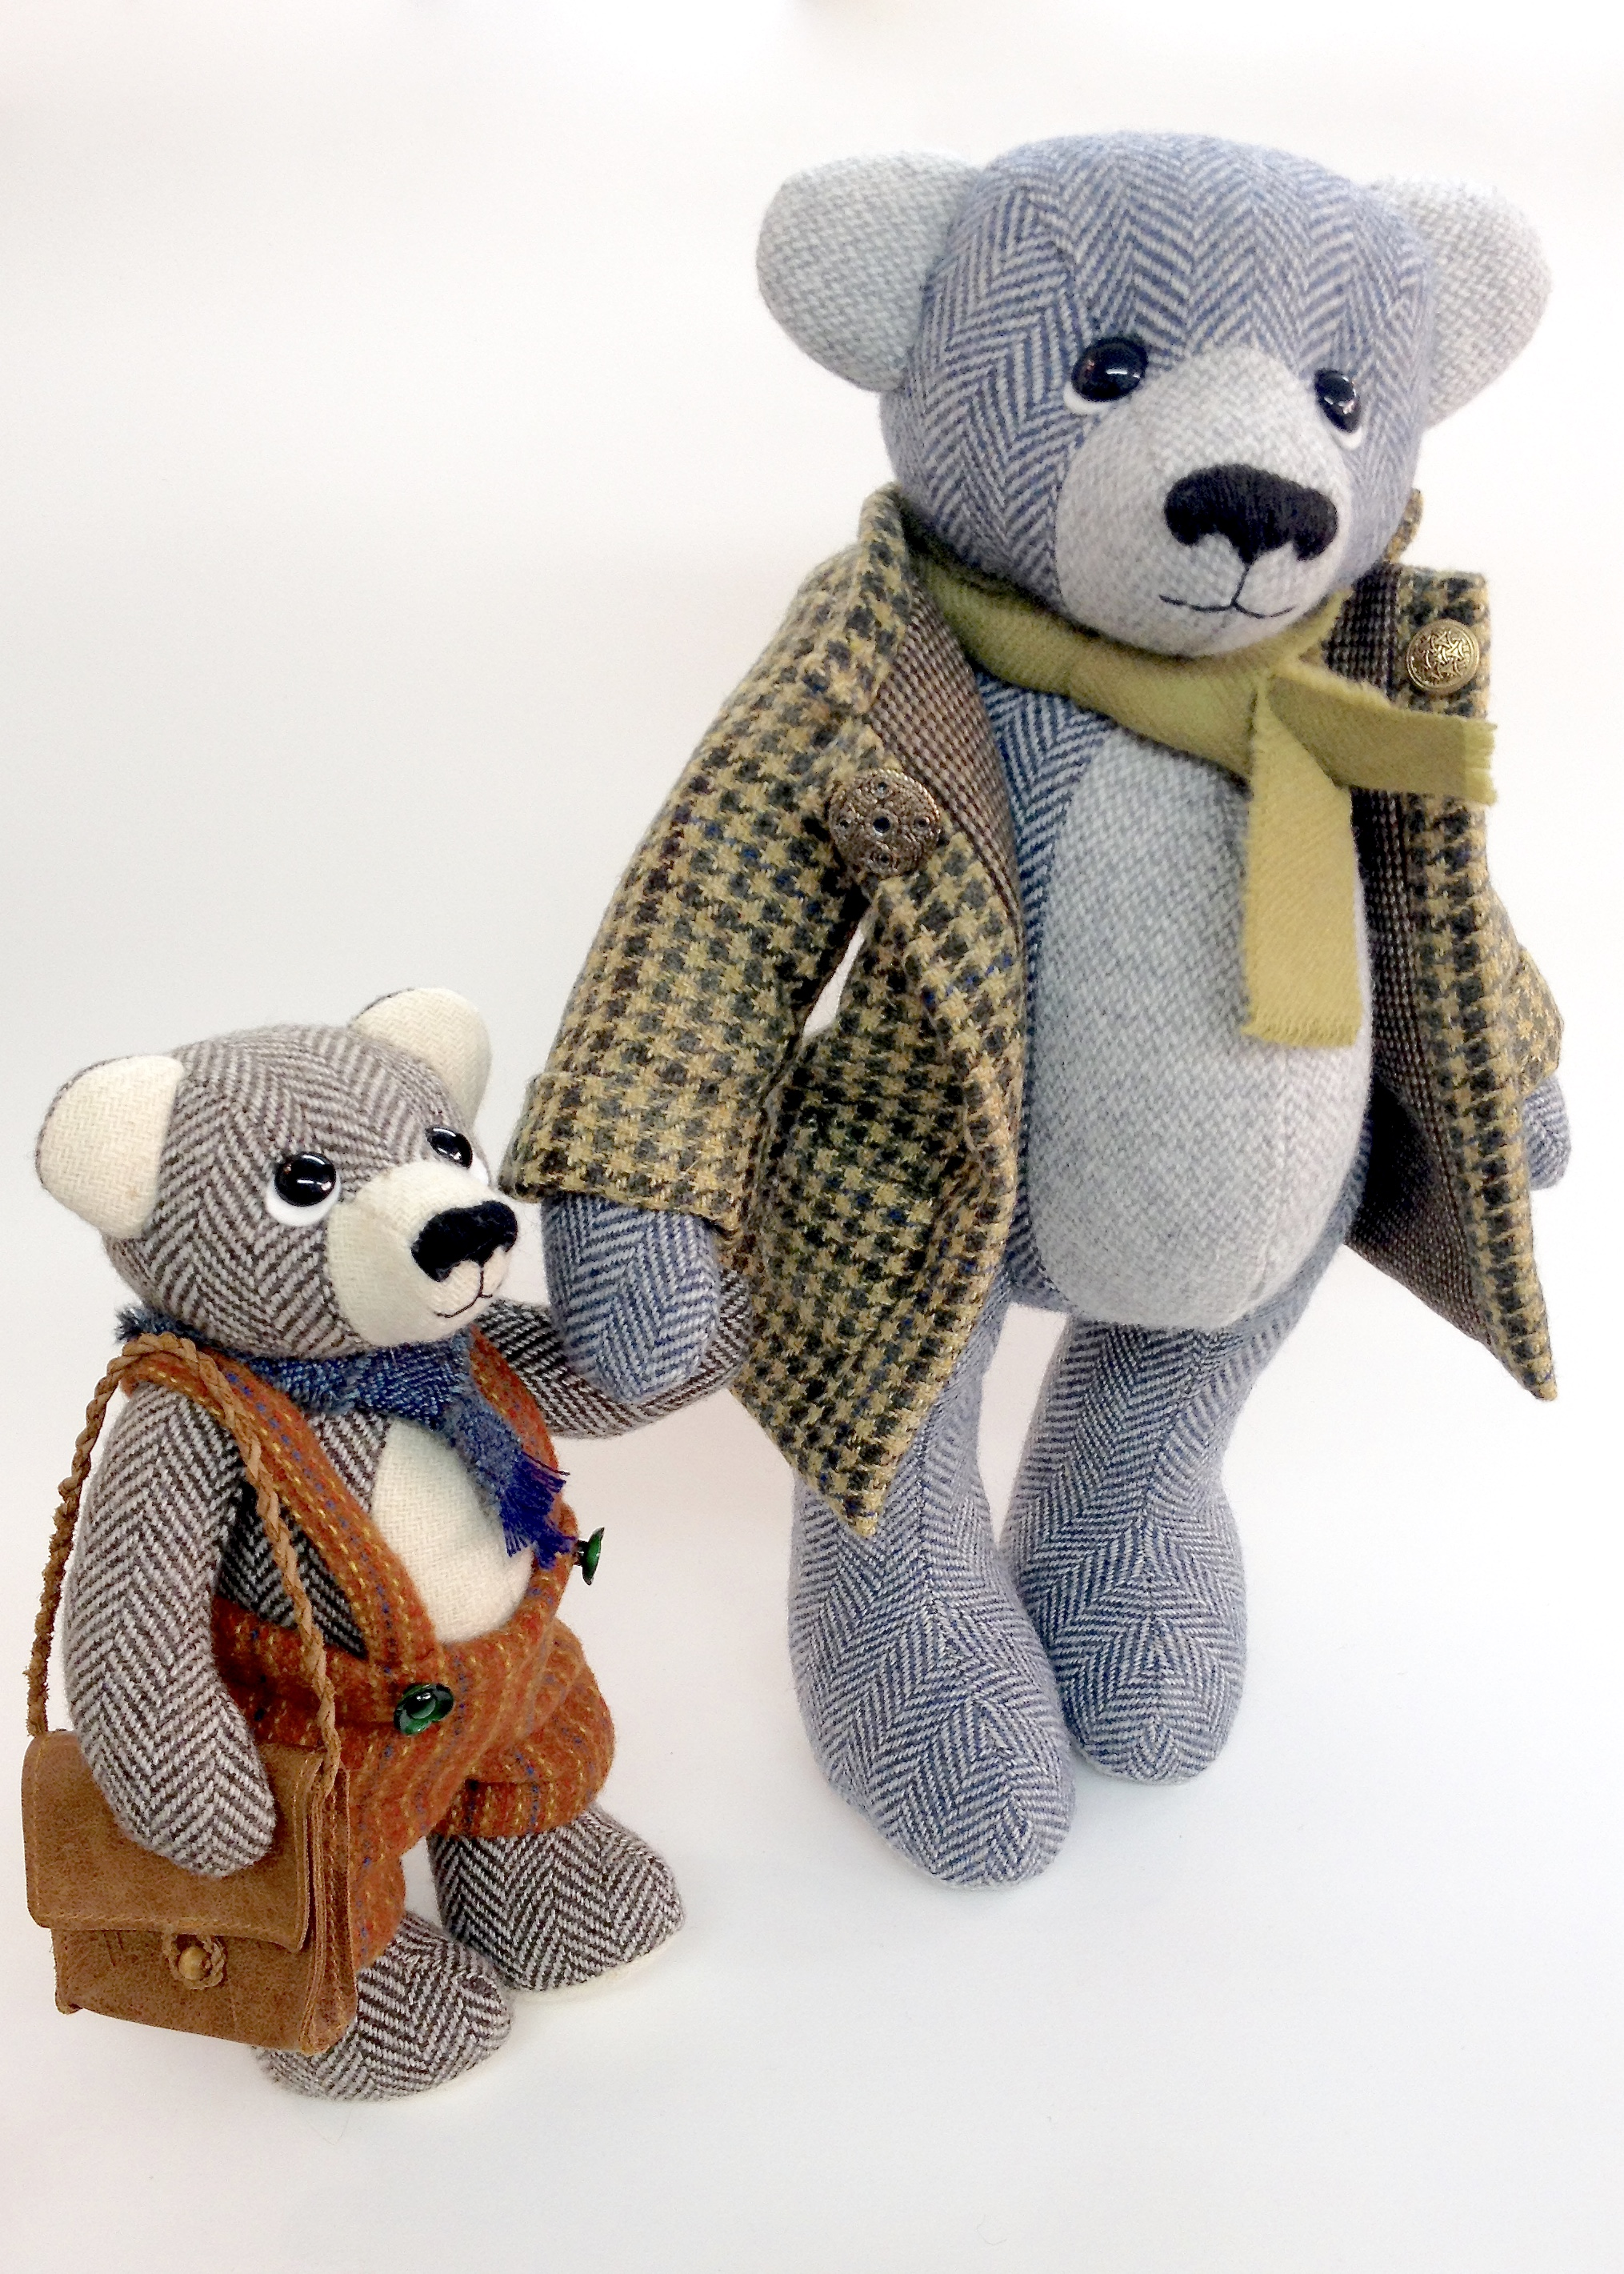 Artist tweed teddy bears by Laura Mirjami | Mirjami Design